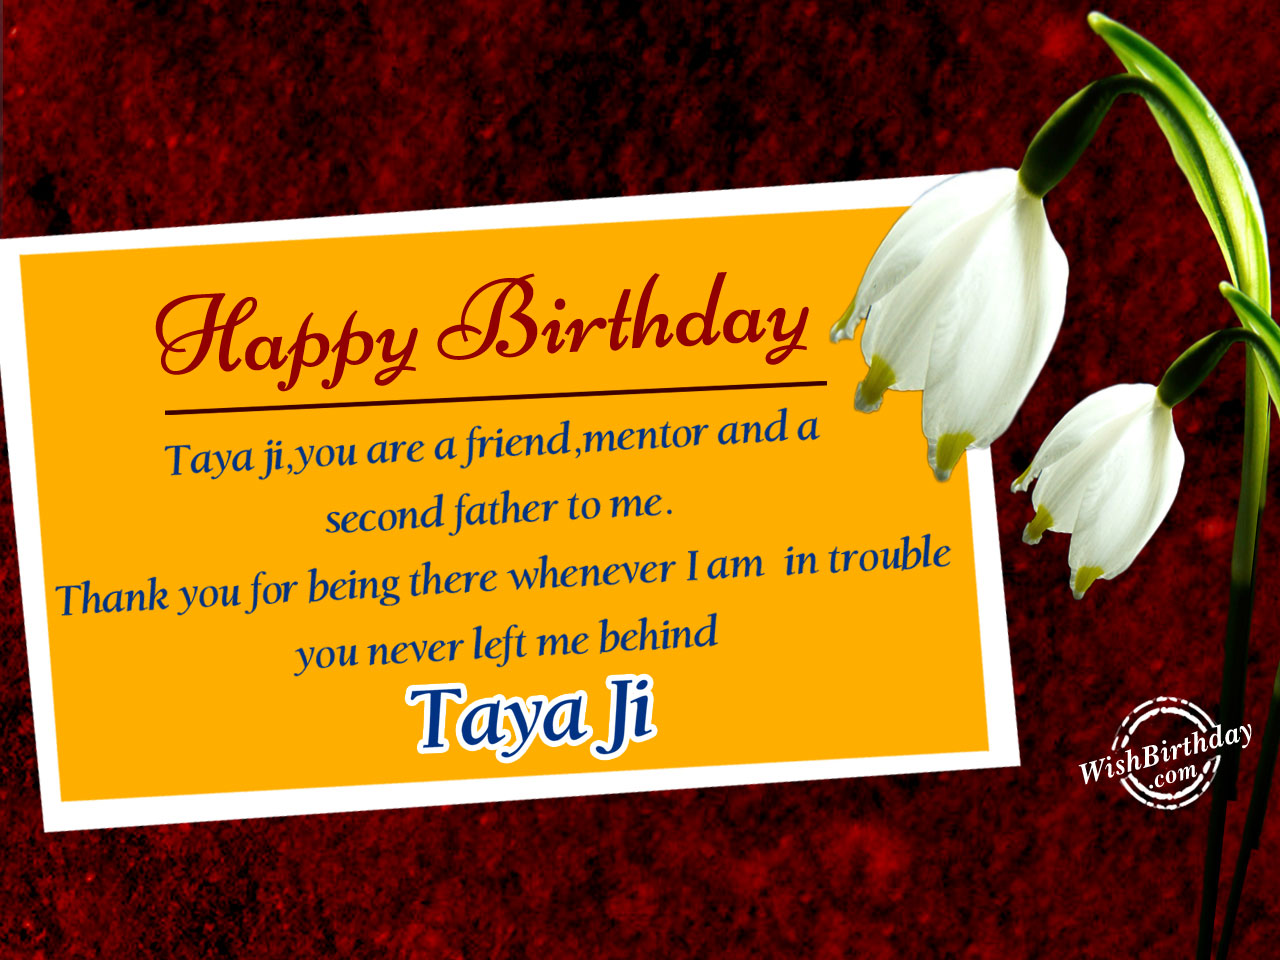 Birthday Wishes For Taya Ji - Birthday Images, Pictures